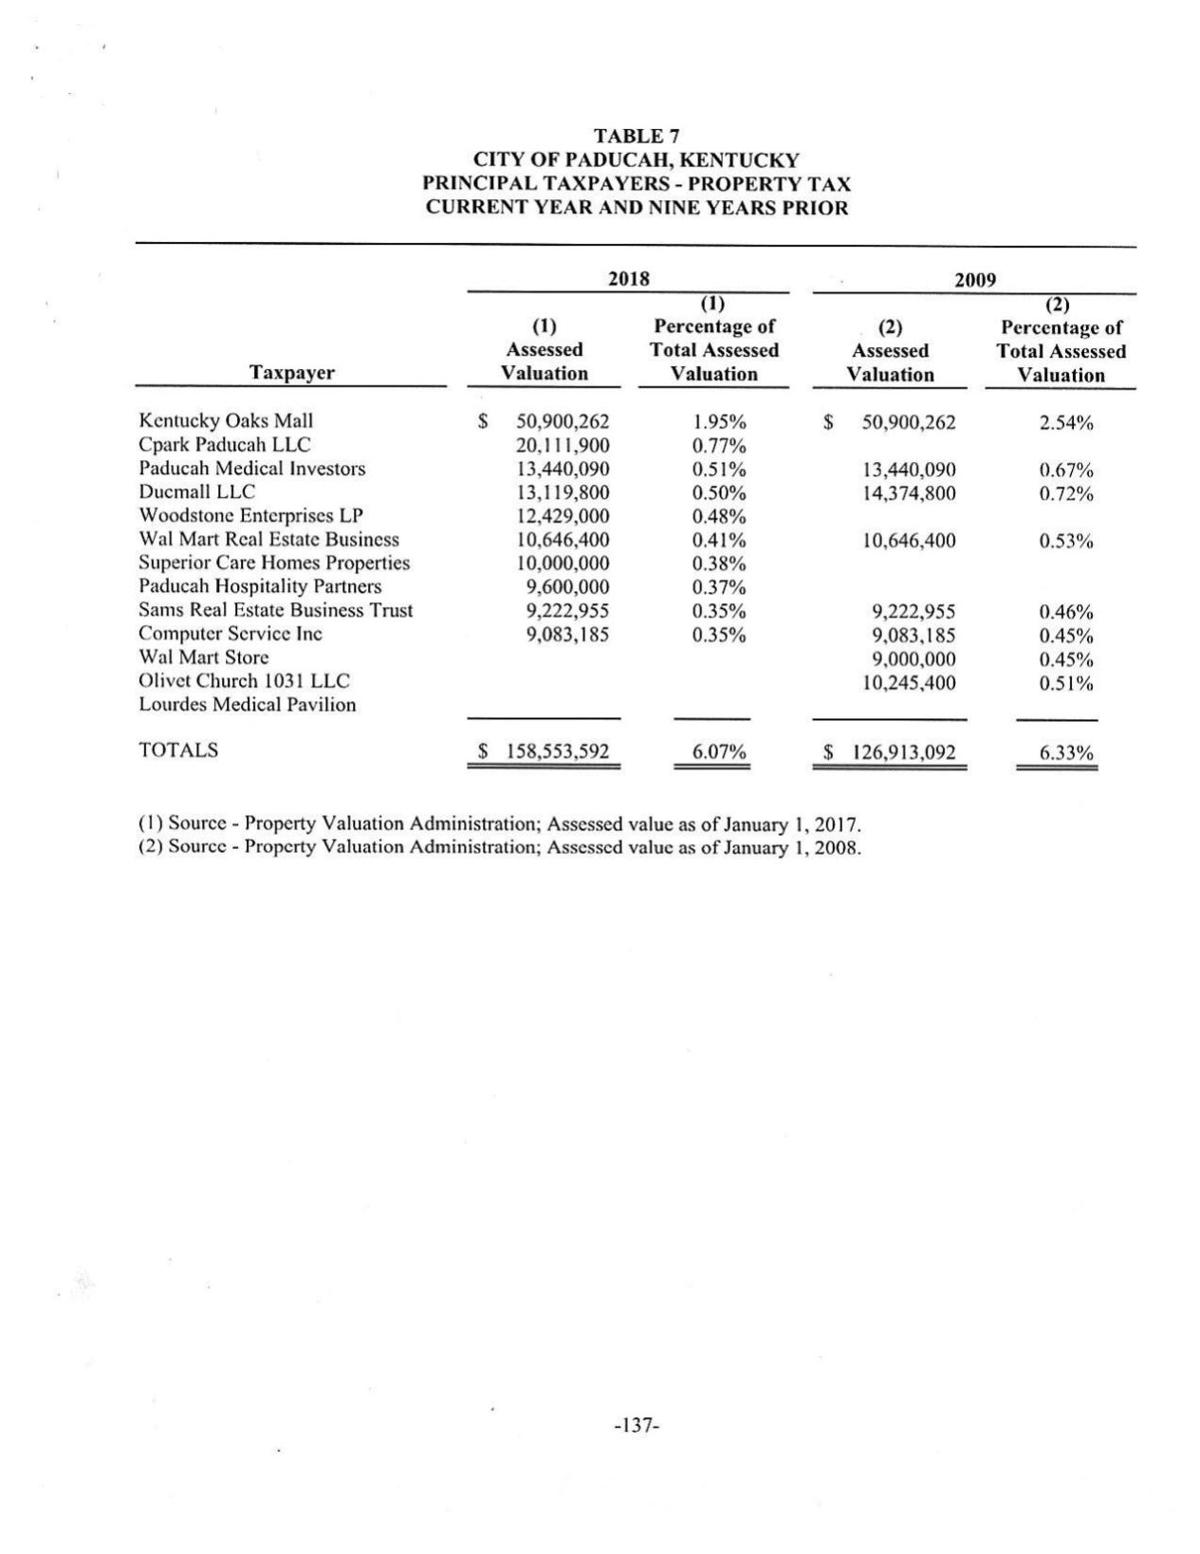 City of Paducah Principal Taxpayers records from 2002-2018